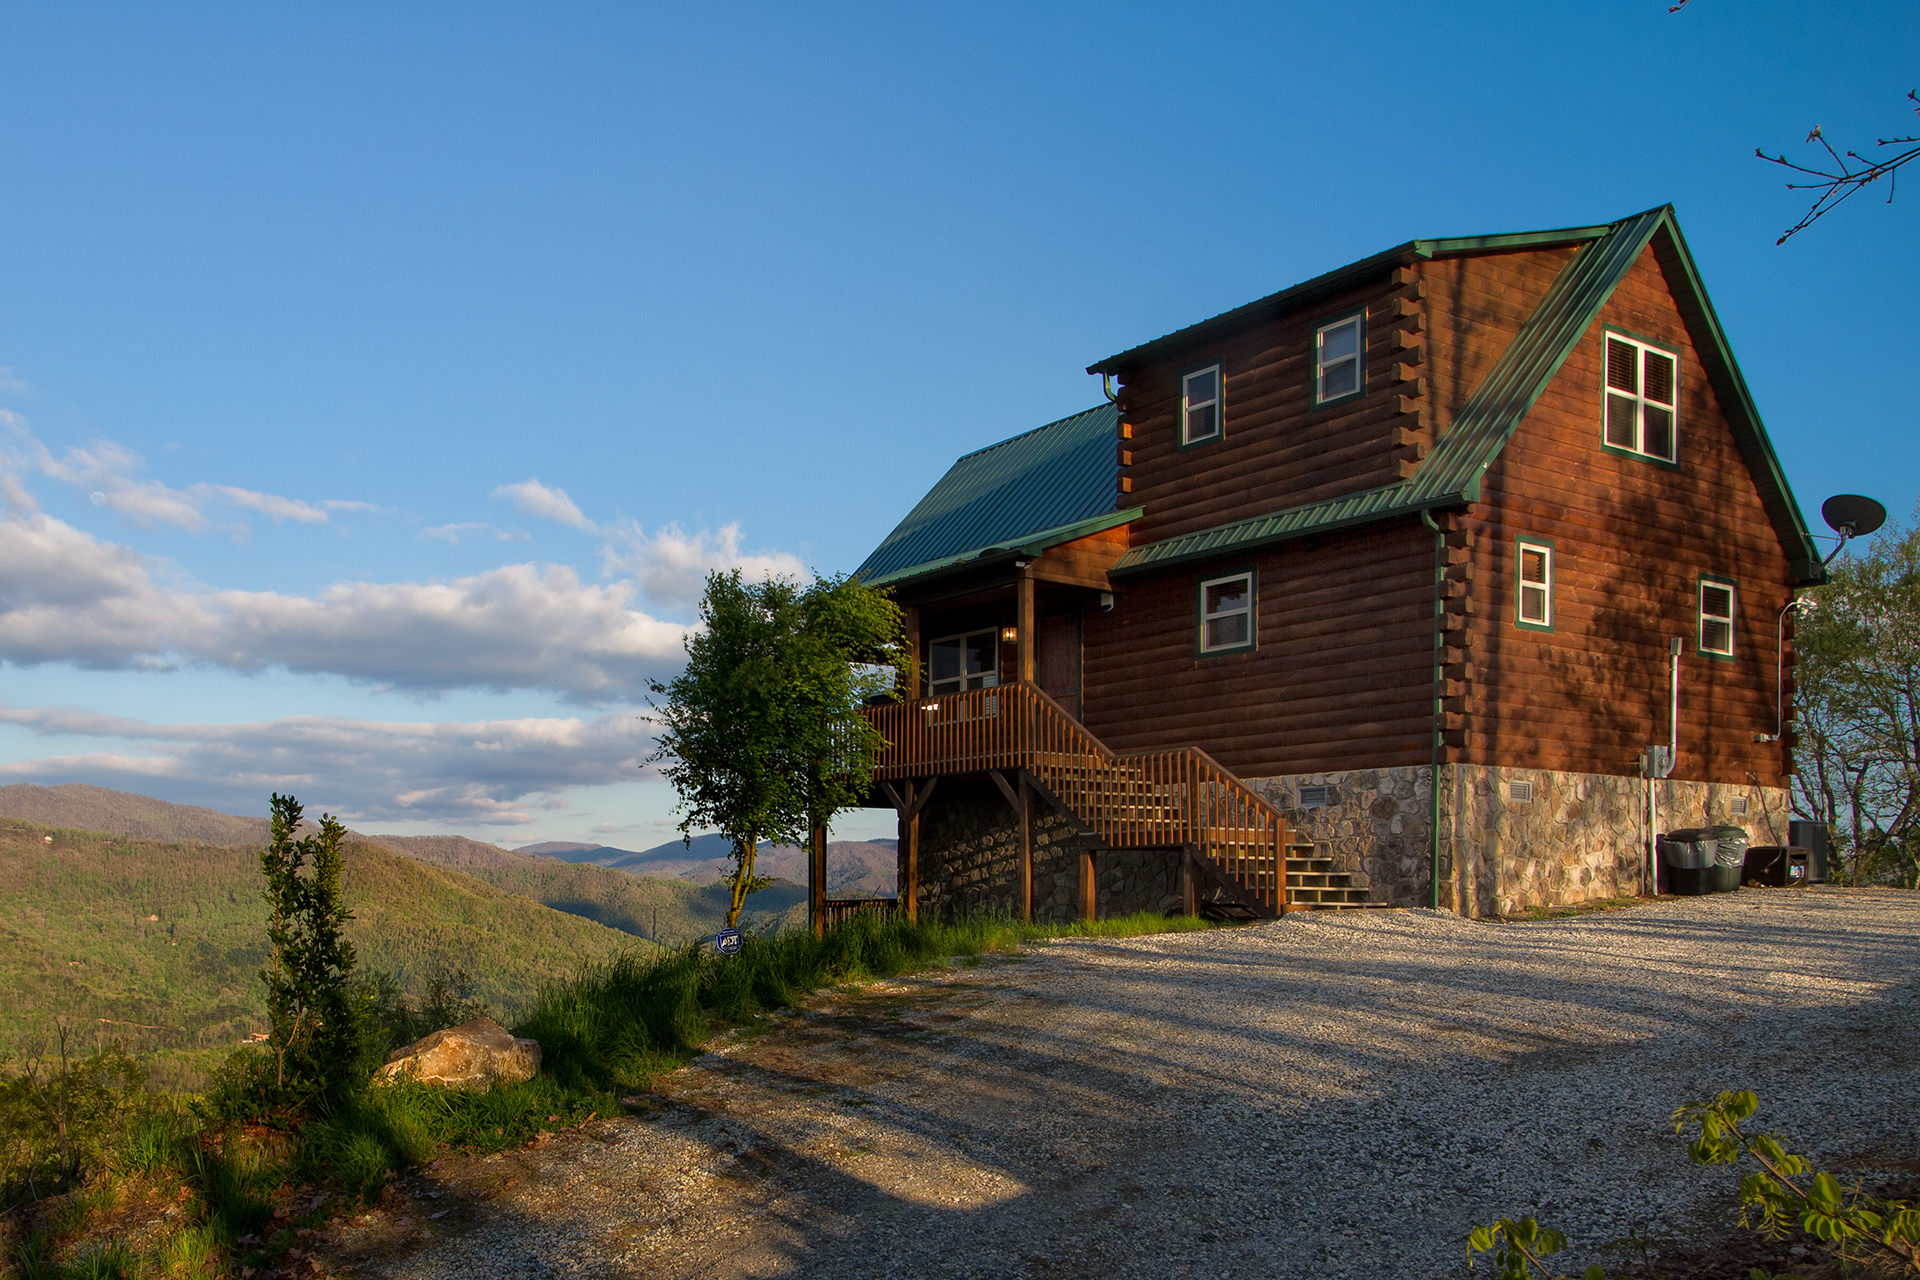 cabins bryson city friendly smoky pet skytop rentals vacation near home asp rental affordable nc cabin